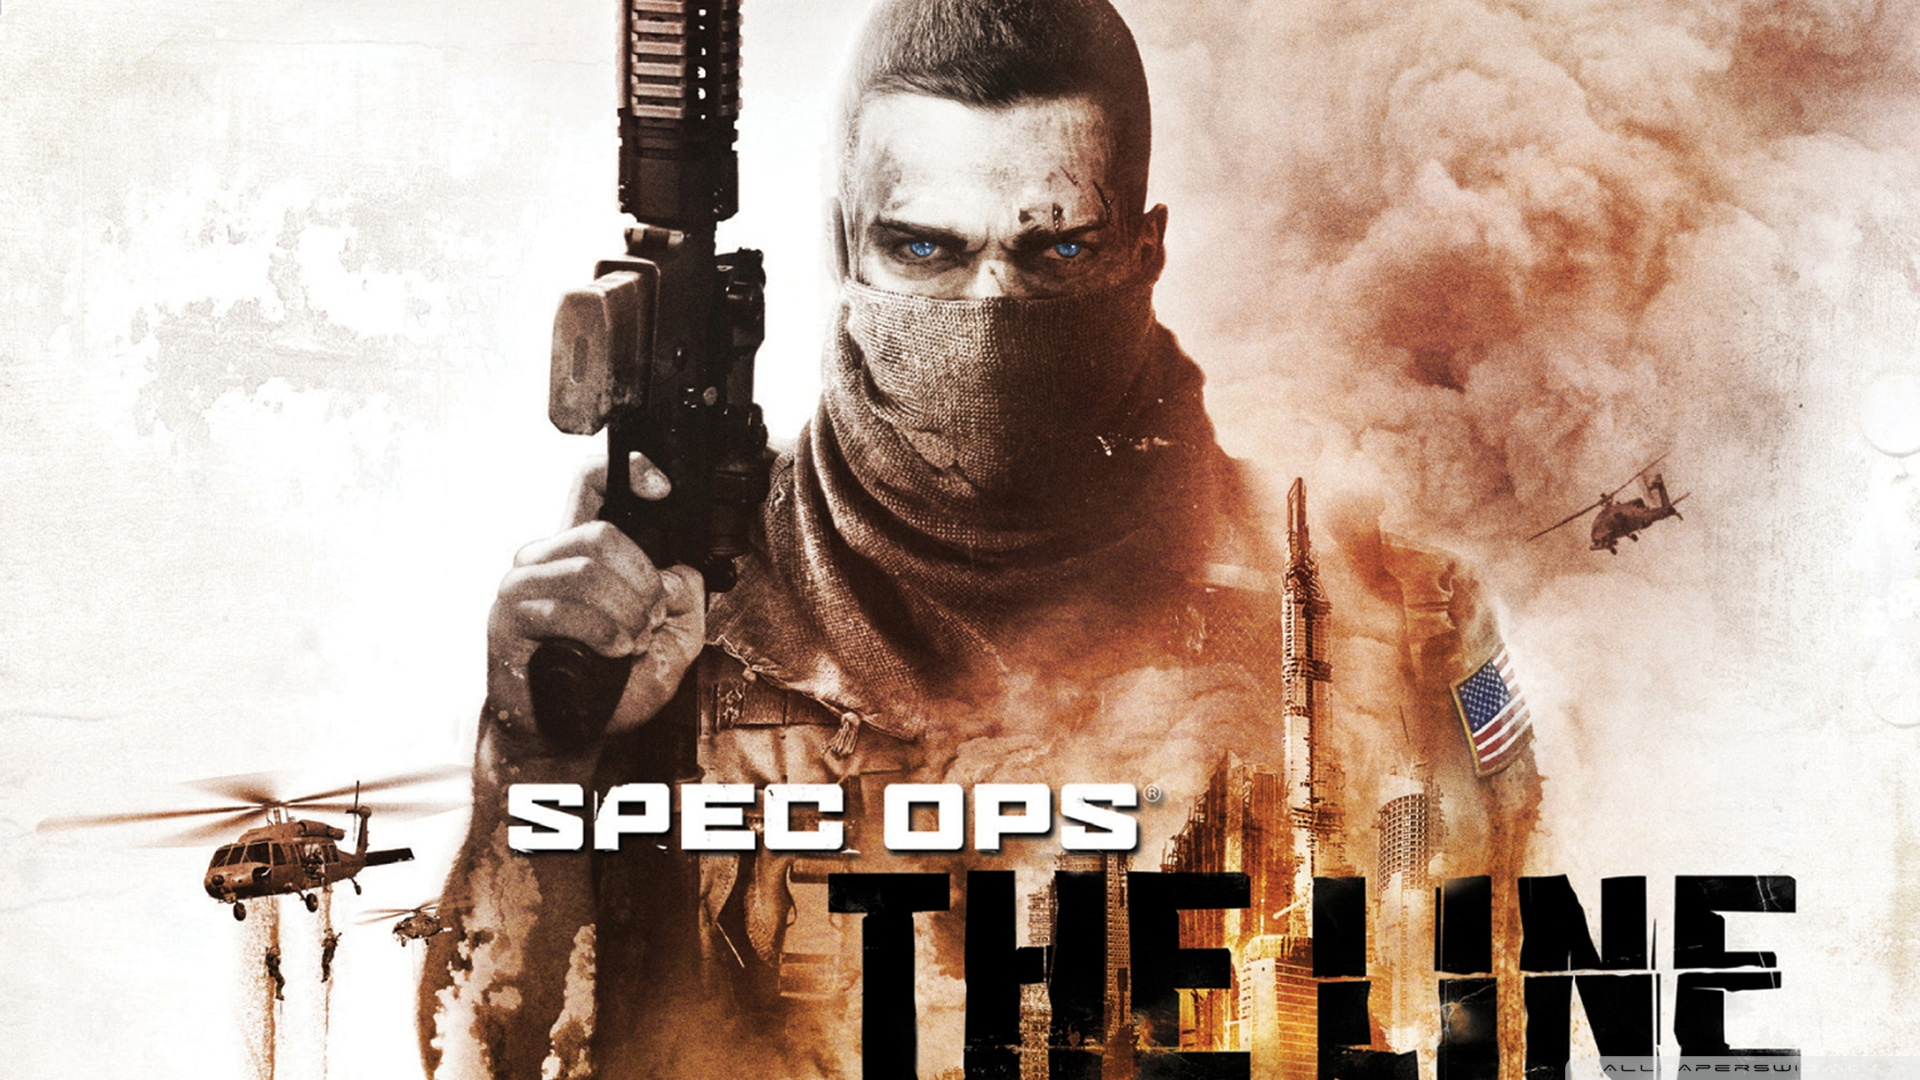 Spec Ops The Line HD Wallpapers 34 images   DodoWallpaper 1920x1080